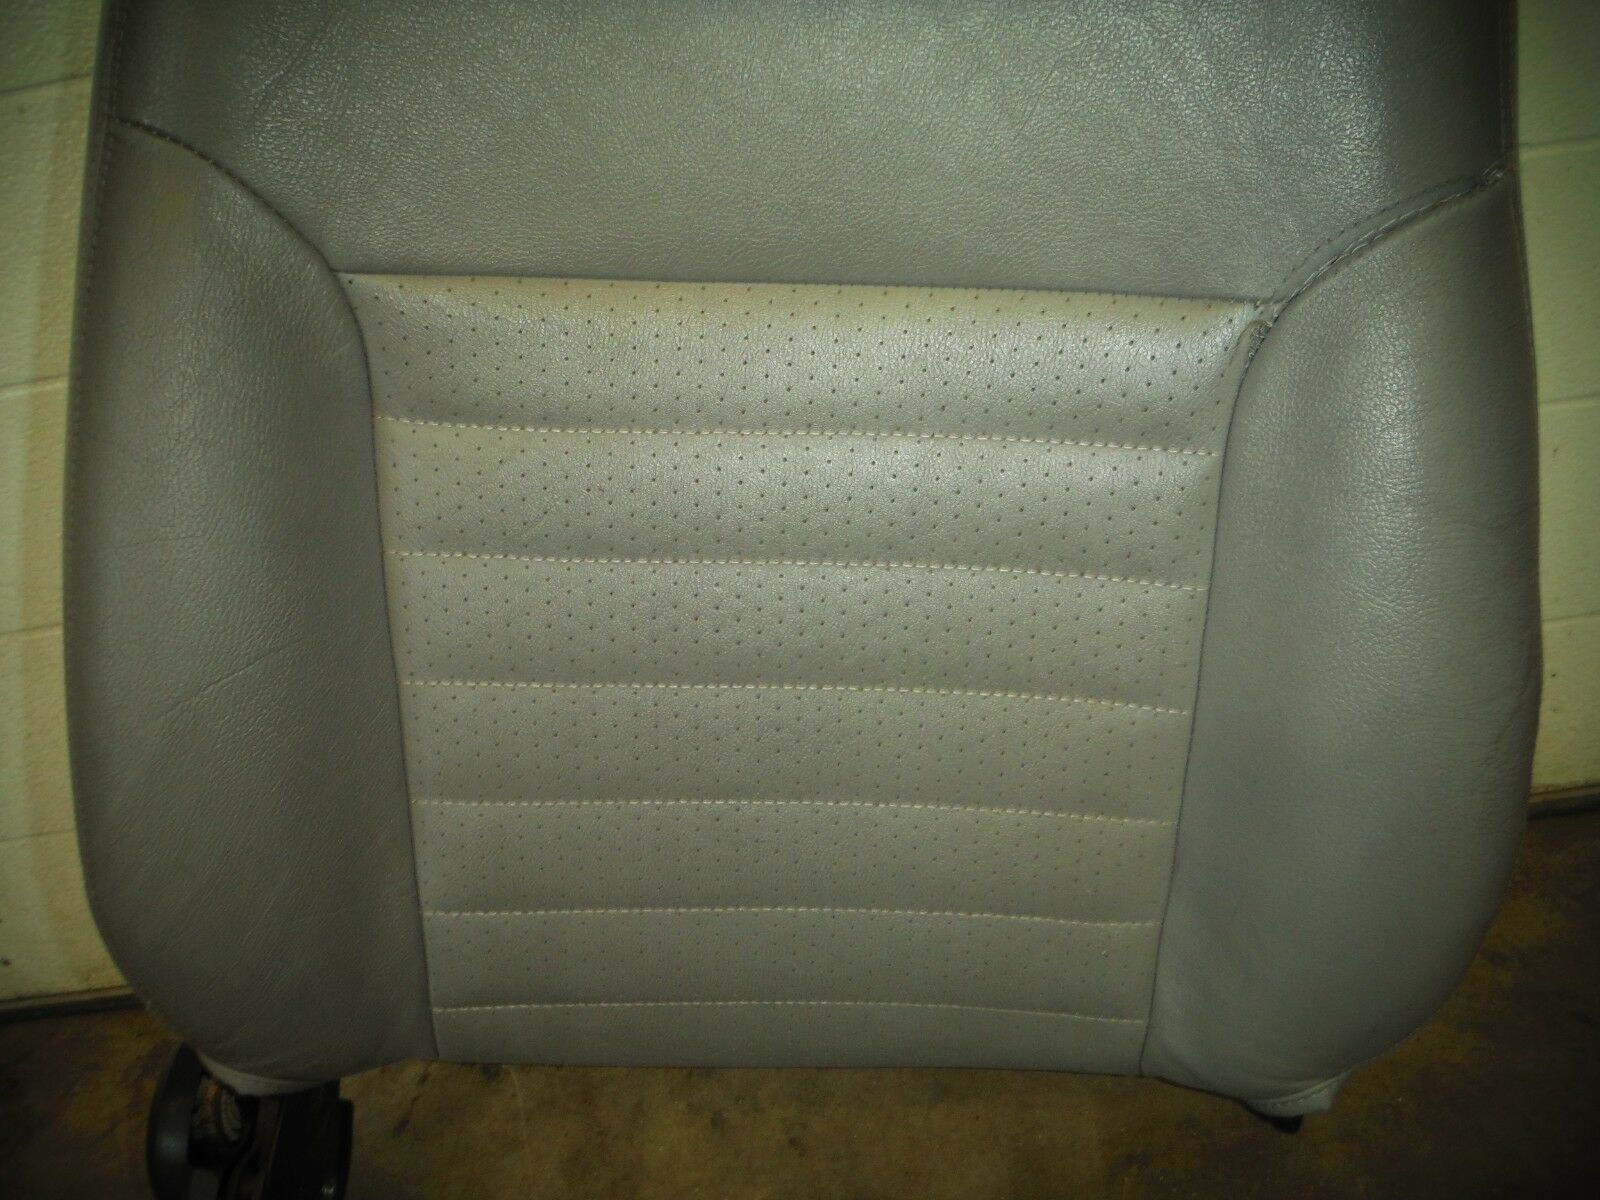 Used Ford Mustang Seats For Sale Page 7